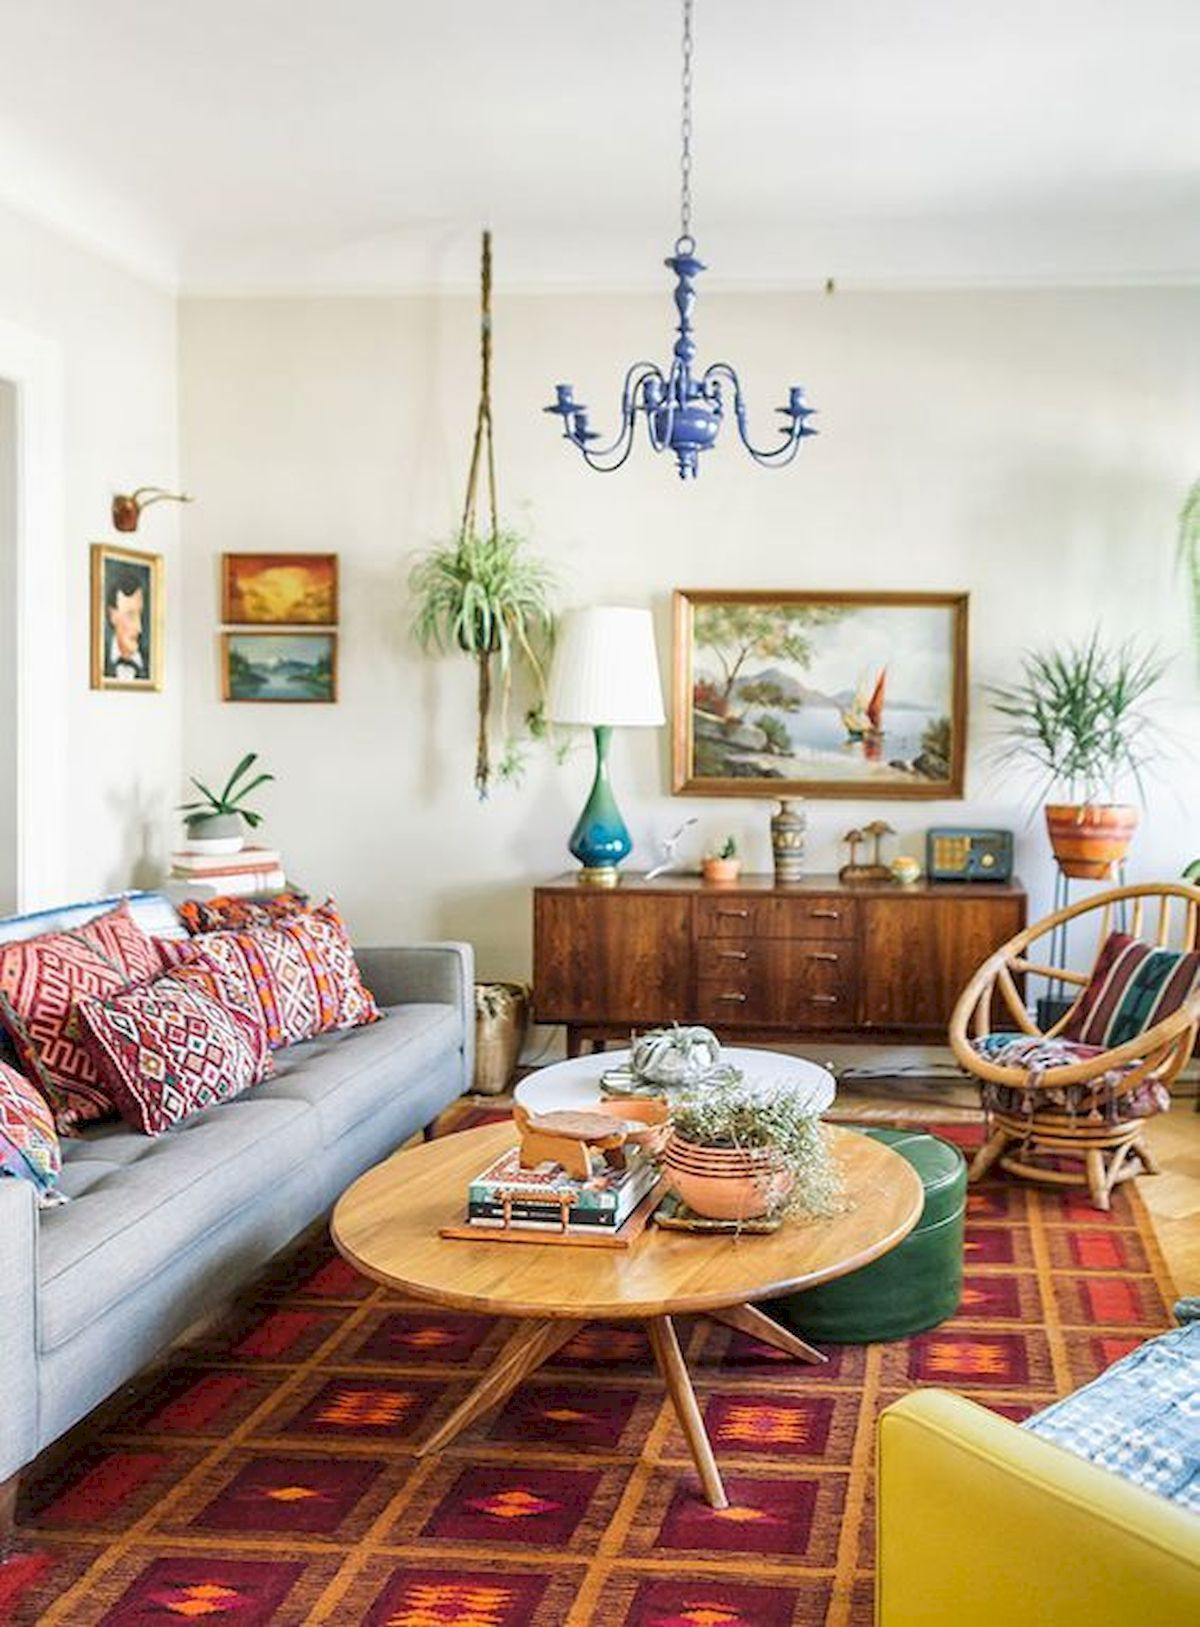 90 Modern Bohemian And Mid Century Living Room Design Ideas And